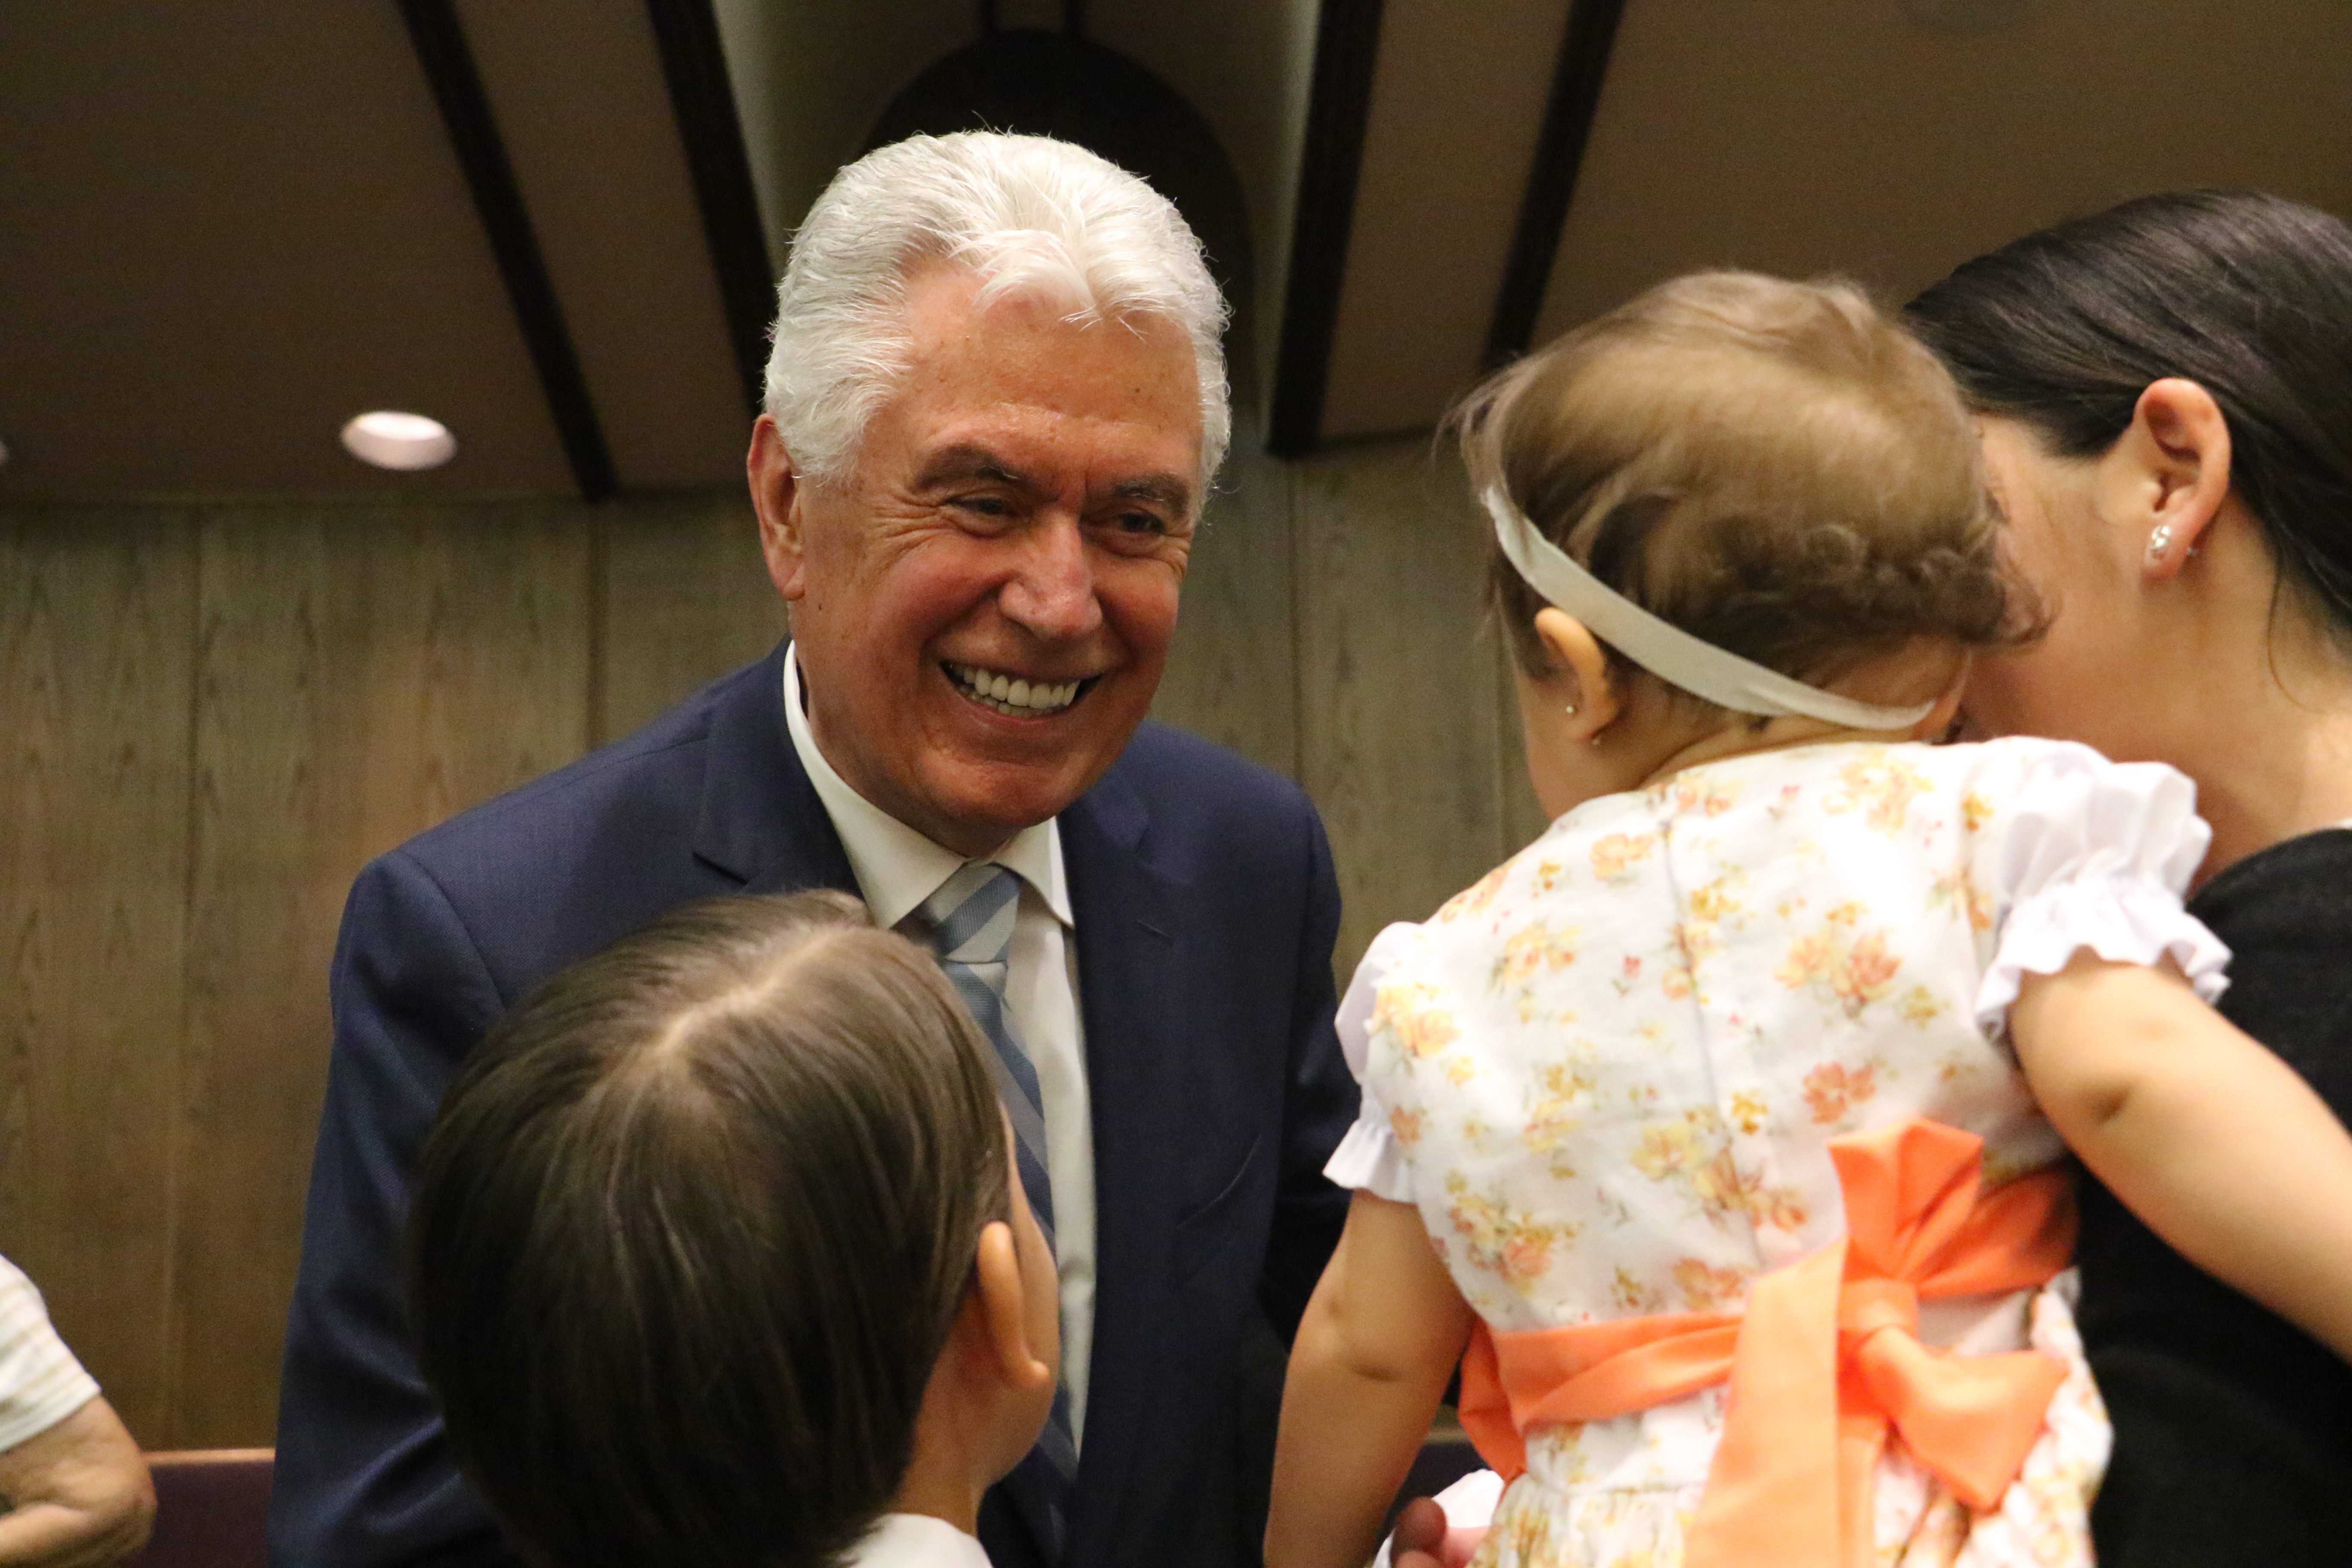 Elder Dieter F. Uchtdorf of the Quorum of the Twelve Apostles greets members following the German Speaking Ward's final sacrament meeting on July 14, 2019, in Salt Lake City. He spent over an hour shaking the hands of attendees.